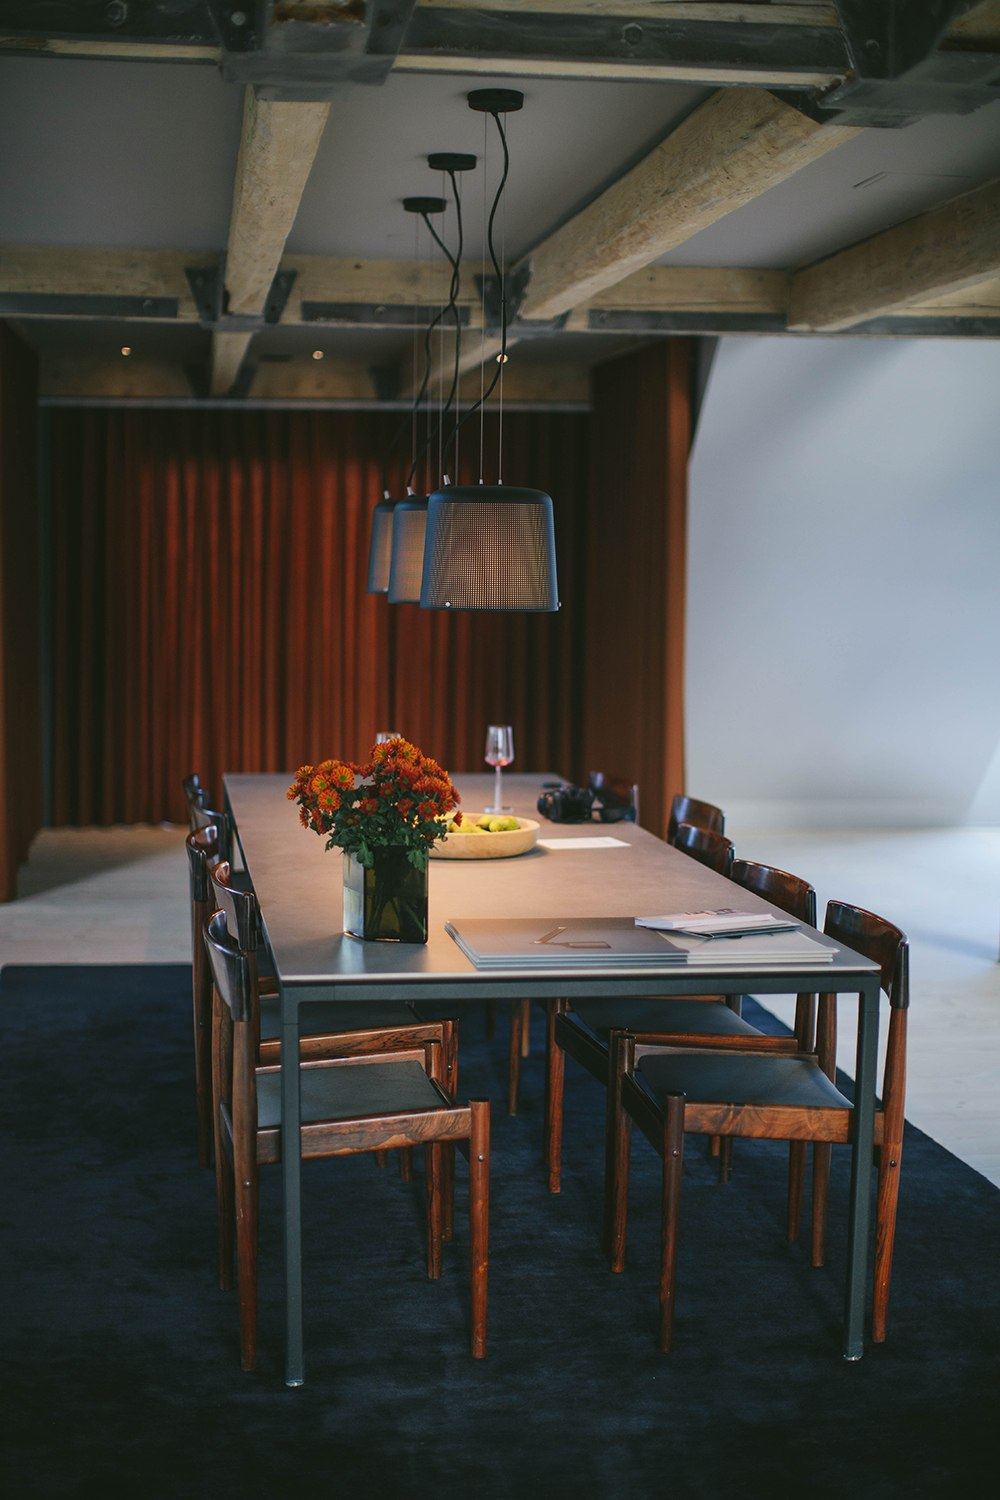 Vipp Mülleimer A Weekend At The Stunning Vipp Loft In Copenhagen - Our